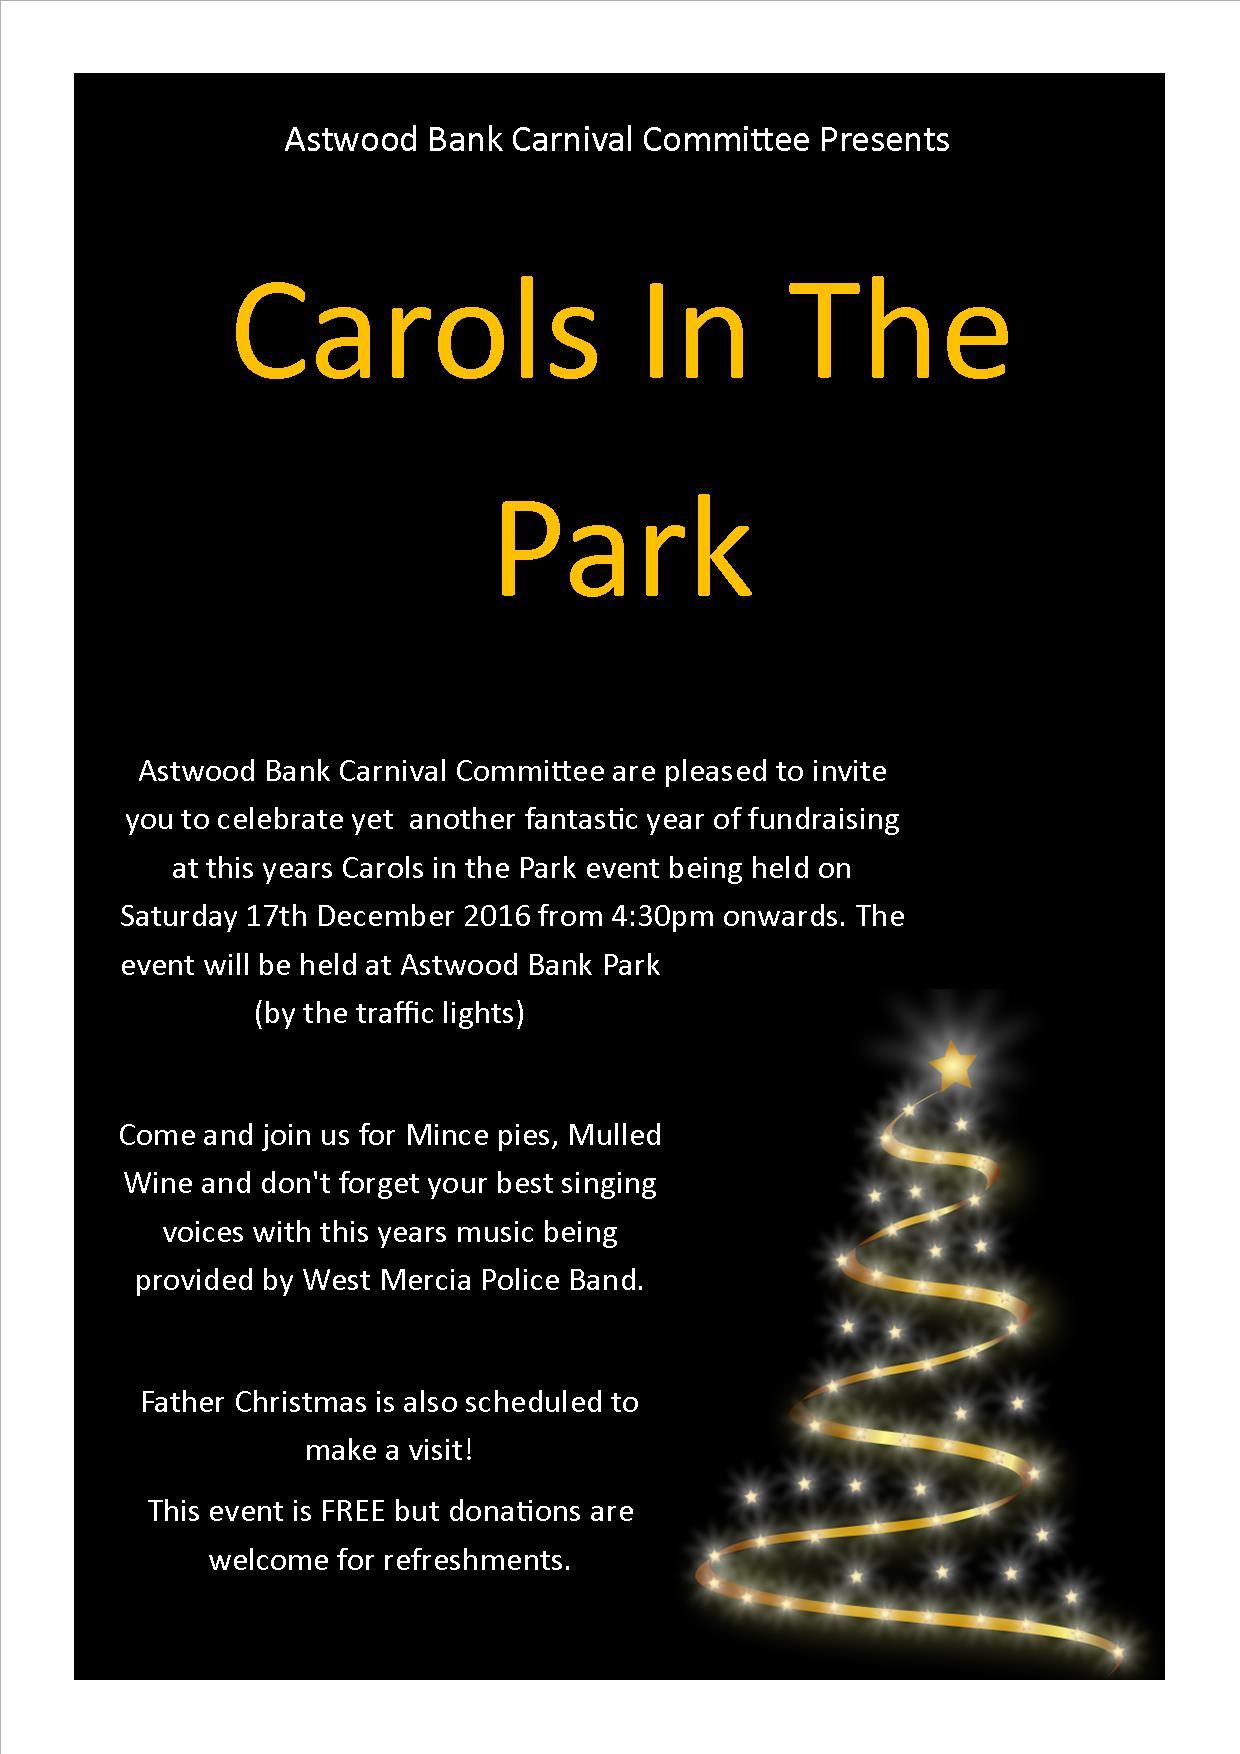 carols-in-the-park-event-poster-2016